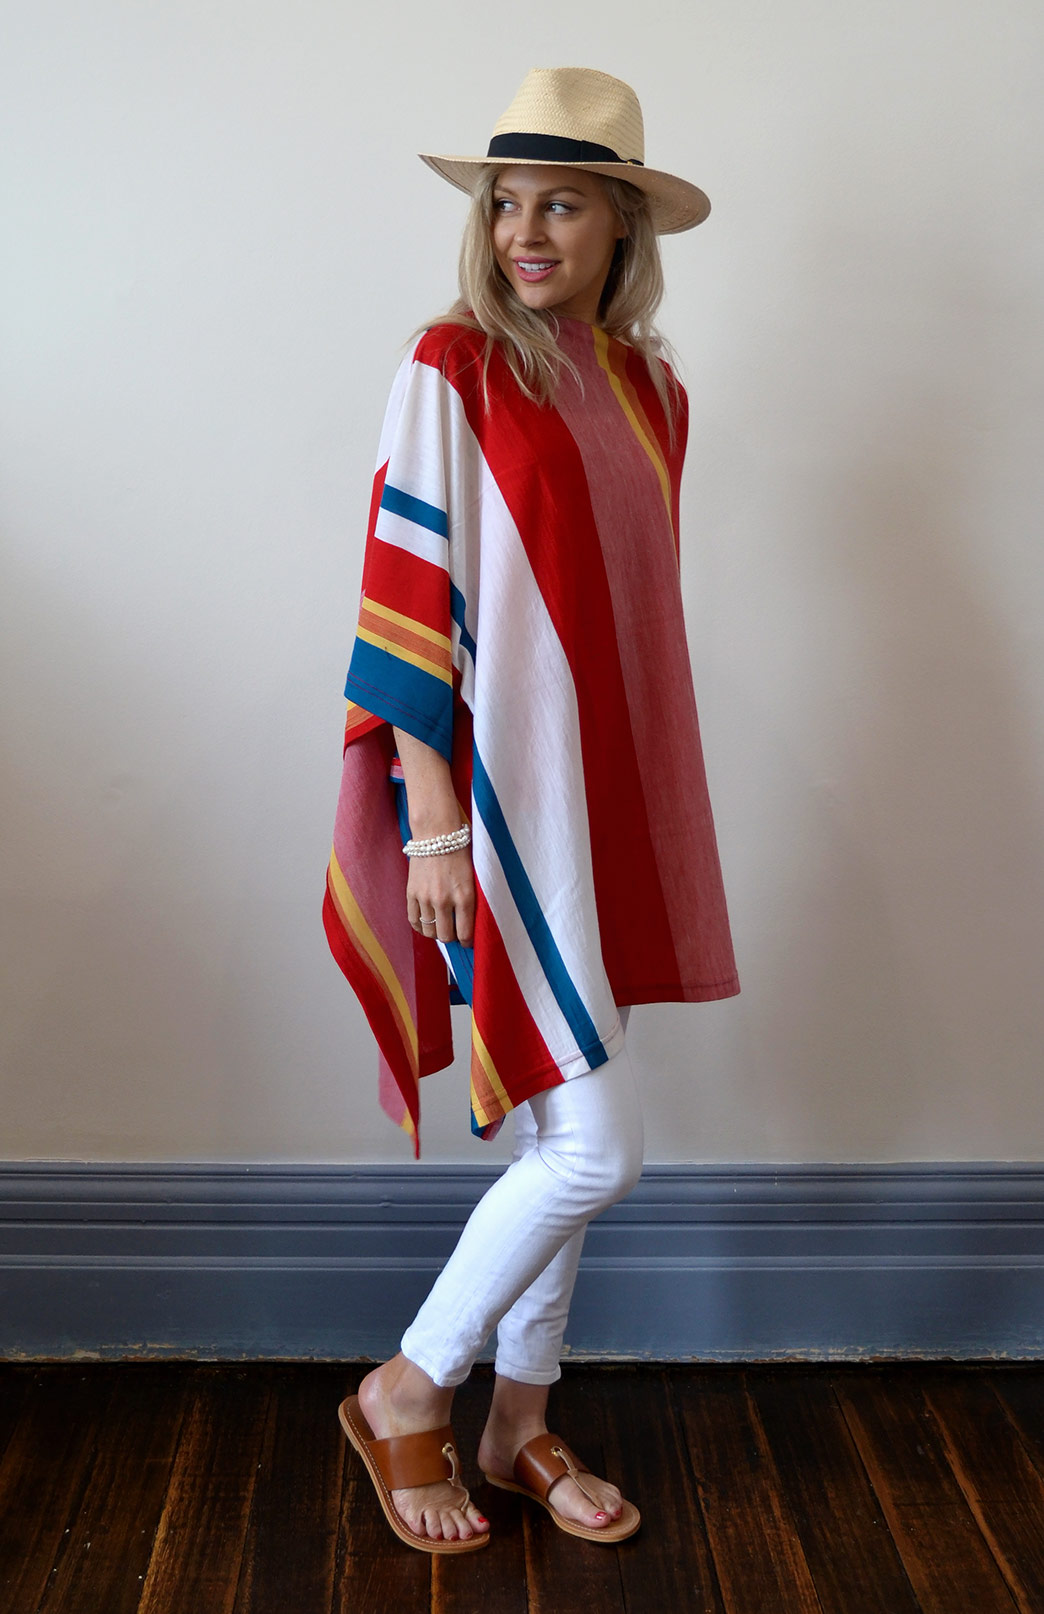 Oversized Poncho - Striped & Patterned - Women's Red and Yellow Striped Oversized Wool Poncho - Smitten Merino Tasmania Australia